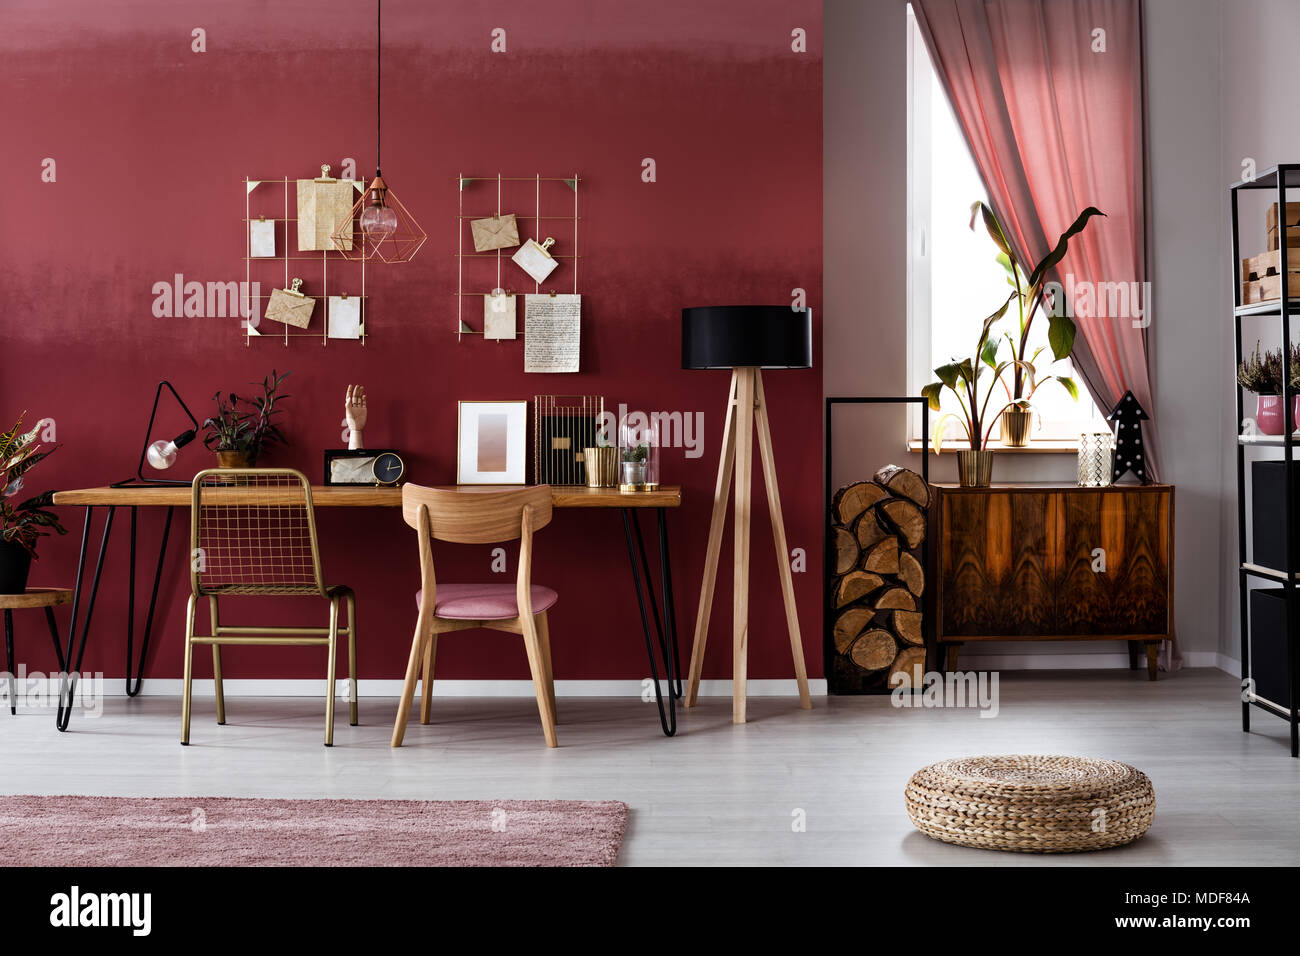 Plant on wooden cupboard against a window in dark red workspace interior with pouf and chair at a table - Stock Image